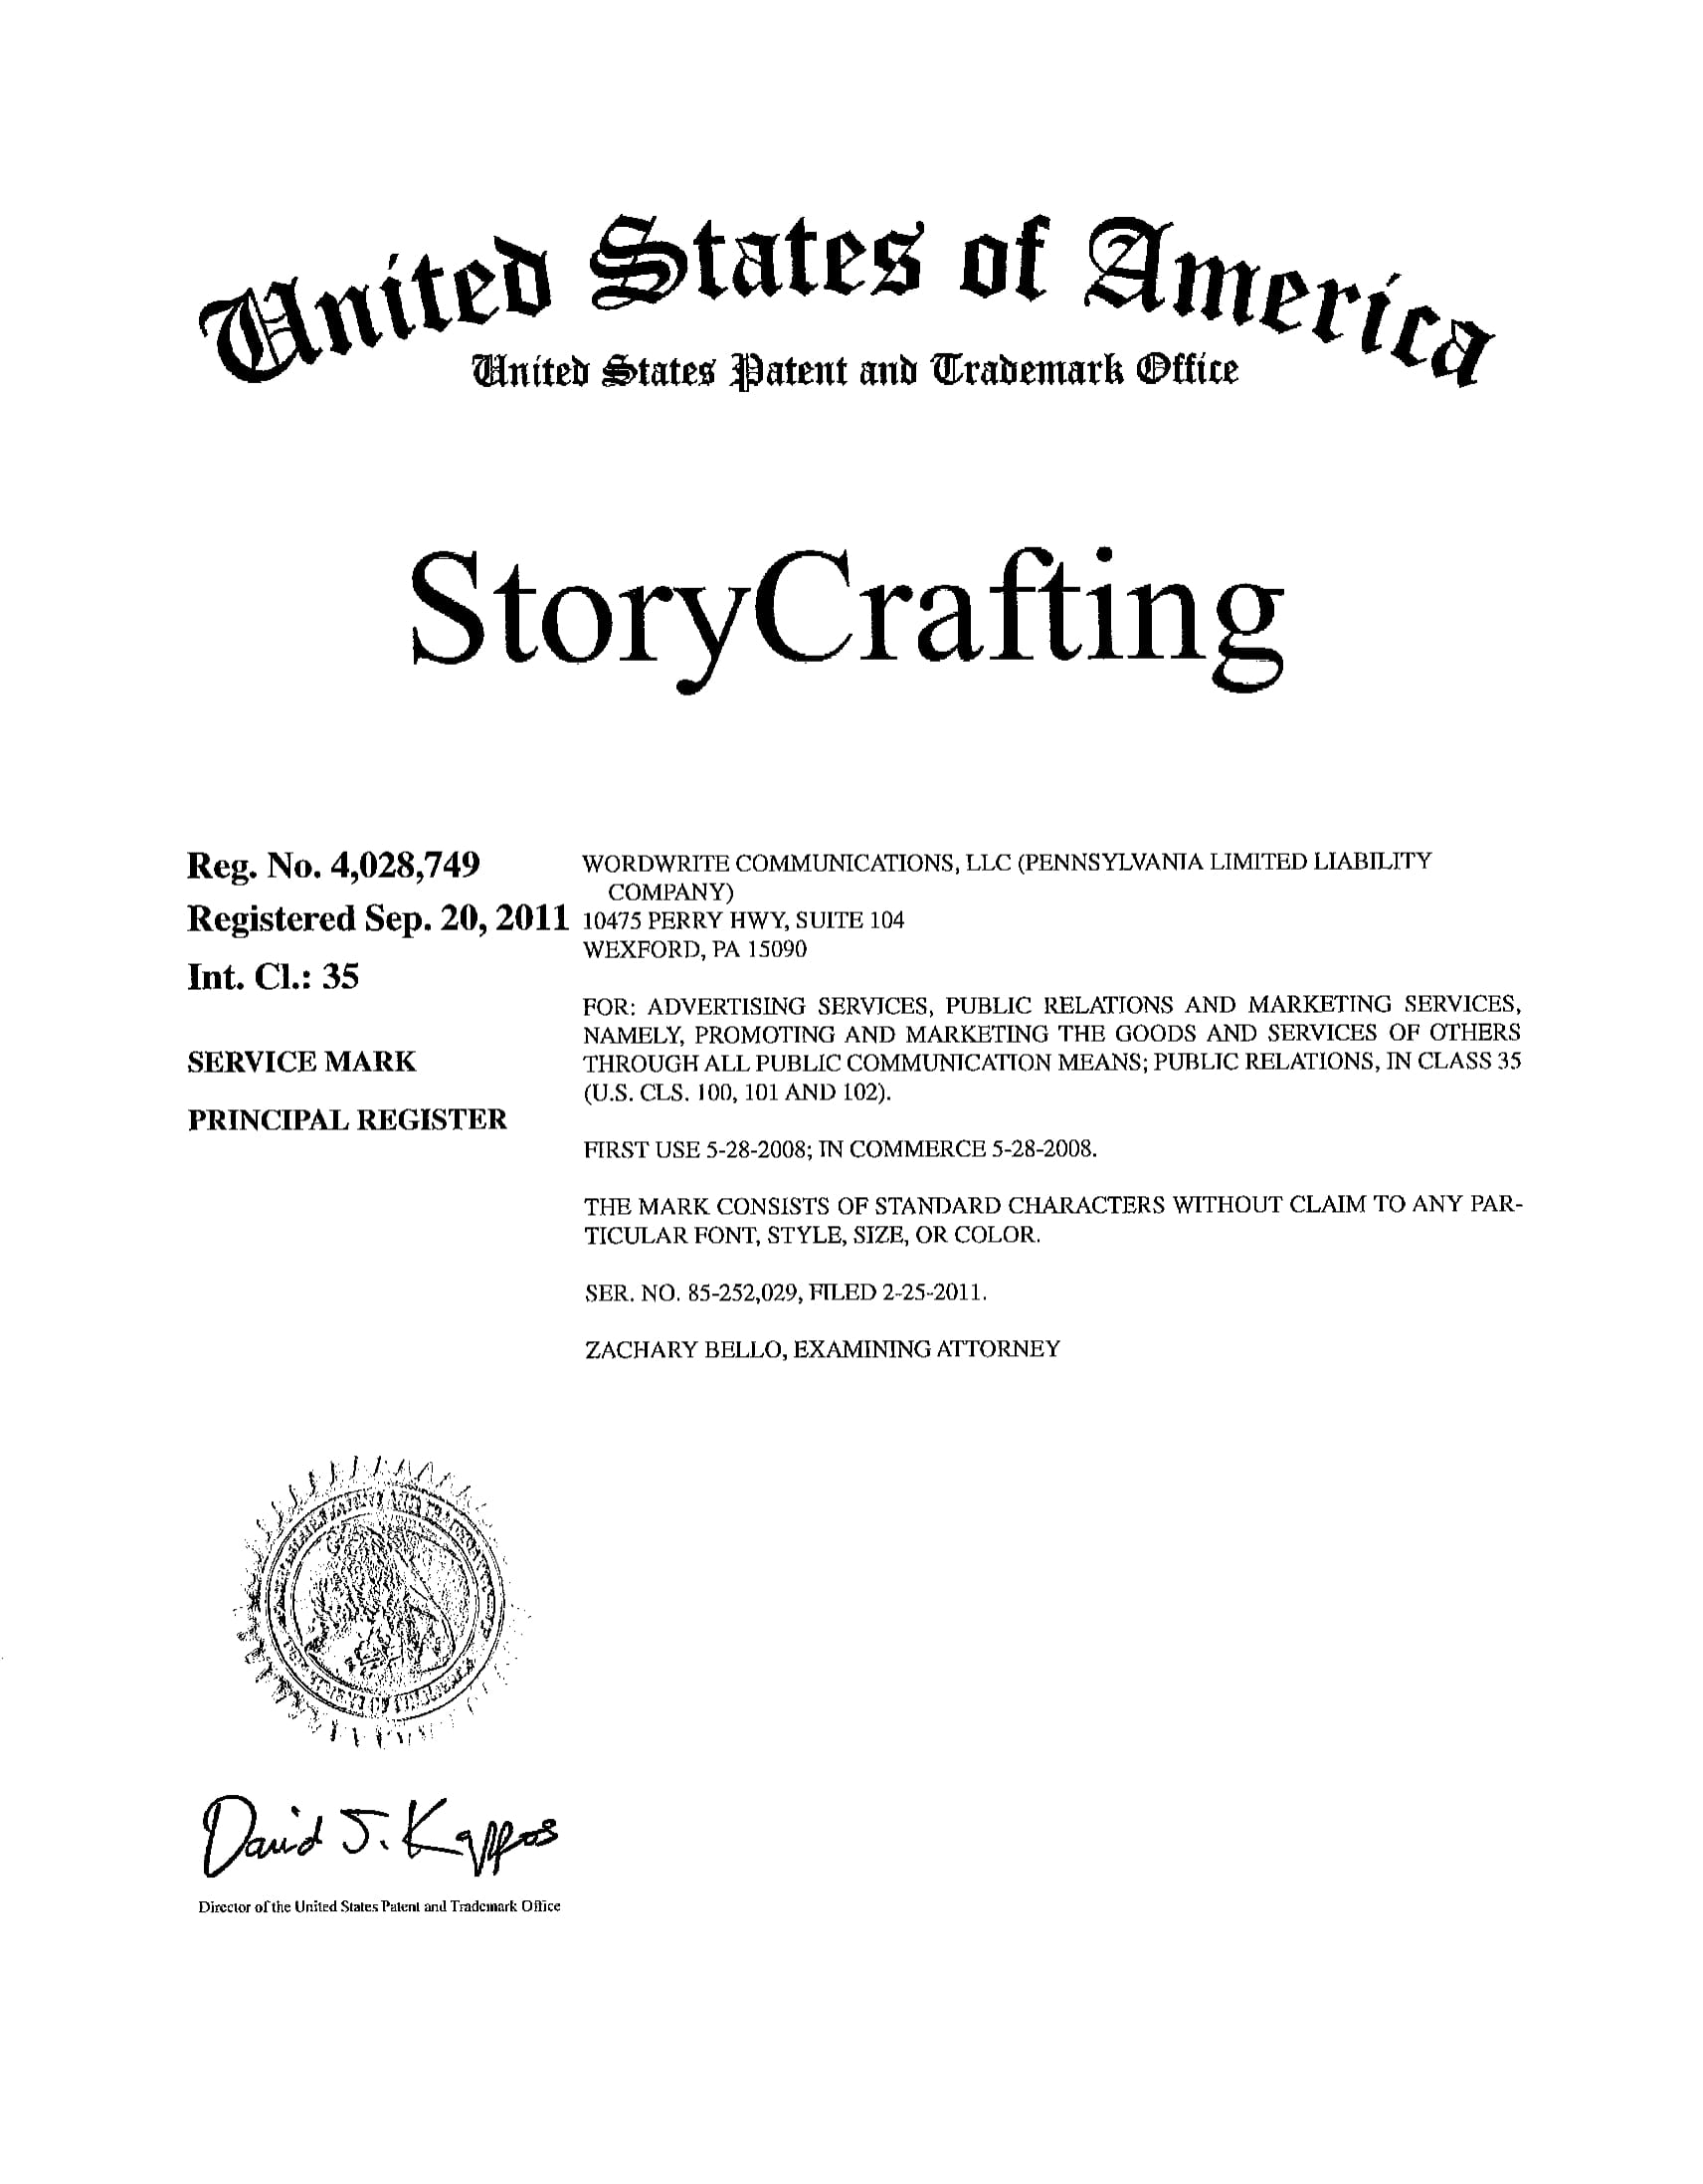 StoryCrafting Registration Mark  approval